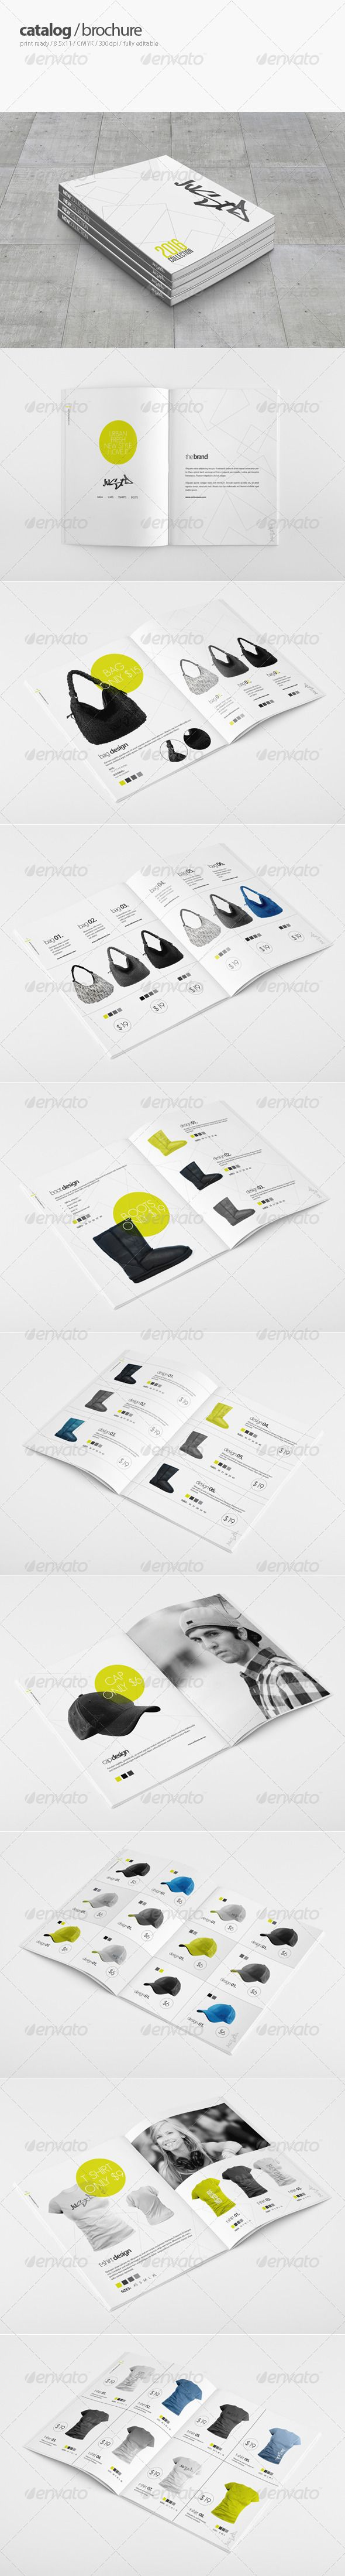 Urban Store Catalogue  #store #stylish #t-shirt • Available here → http://graphicriver.net/item/urban-store-catalogue/4069818?s_rank=257&ref=pxcr